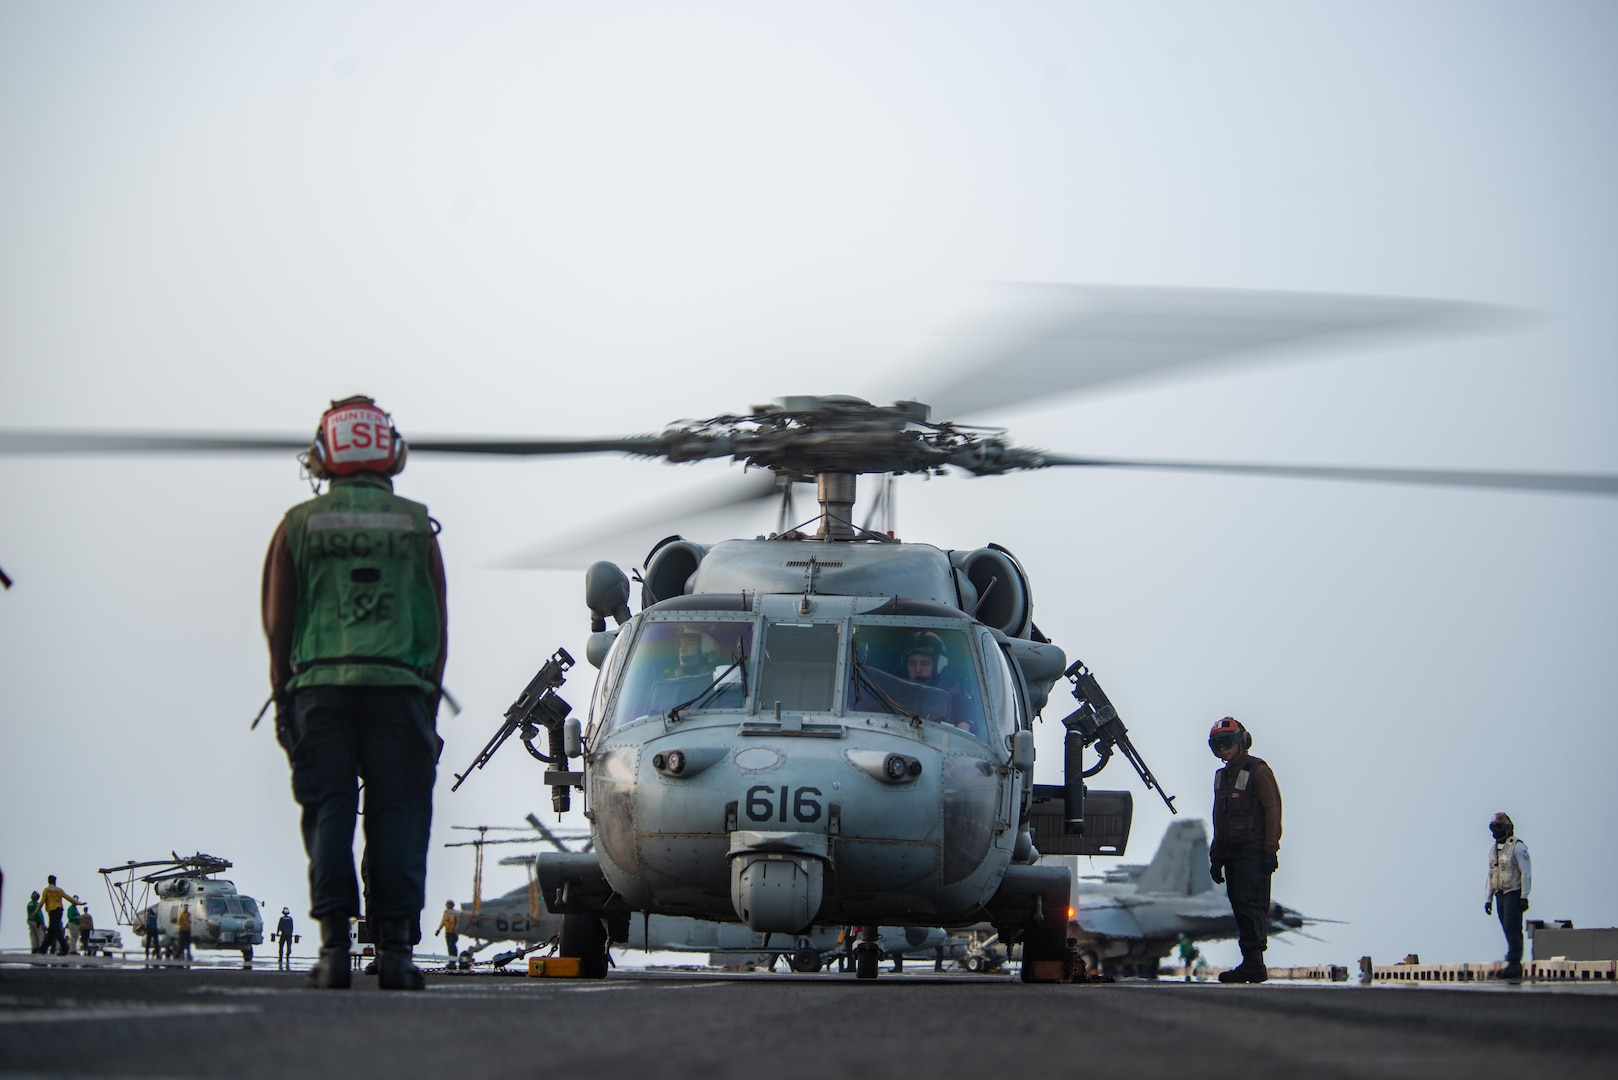 """210730-N-WS494-1288 ARABIAN SEA (July 30, 2021) – Sailors prepare an MH-60S Sea Hawk helicopter, attached to the """"Golden Falcons"""" of Helicopter Sea Combat Squadron (HSC) 12, to launch on the flight deck of aircraft carrier USS Ronald Reagan (CVN 76) in response to a call for assistance from a vessel in distress in the Arabian Sea, July 30. Ronald Reagan is deployed to the U.S. 5th Fleet area of operations in support of naval operations to ensure maritime stability and security in the Central Region, connecting the Mediterranean and Pacific through the western Indian Ocean and three strategic choke points. (U.S. Navy photo by Mass Communication Specialist 2nd Class Quinton A. Lee)"""